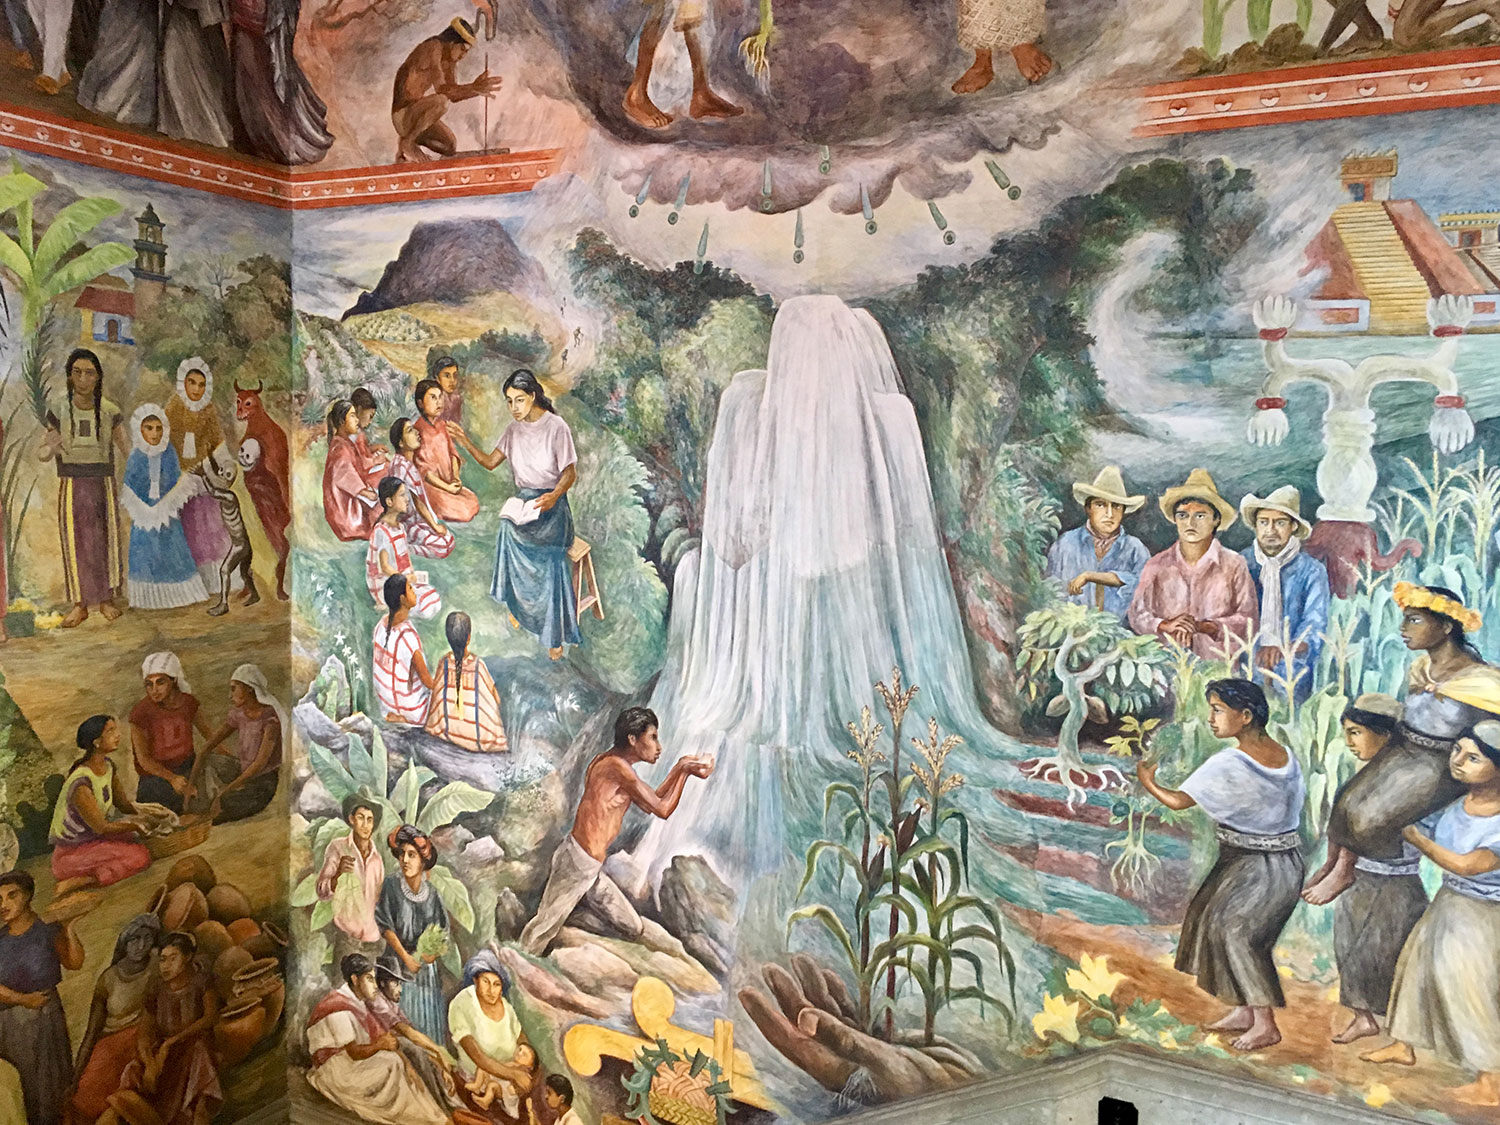 From the same mural, Hierve el Agua water springs used for irrigation of the valley.